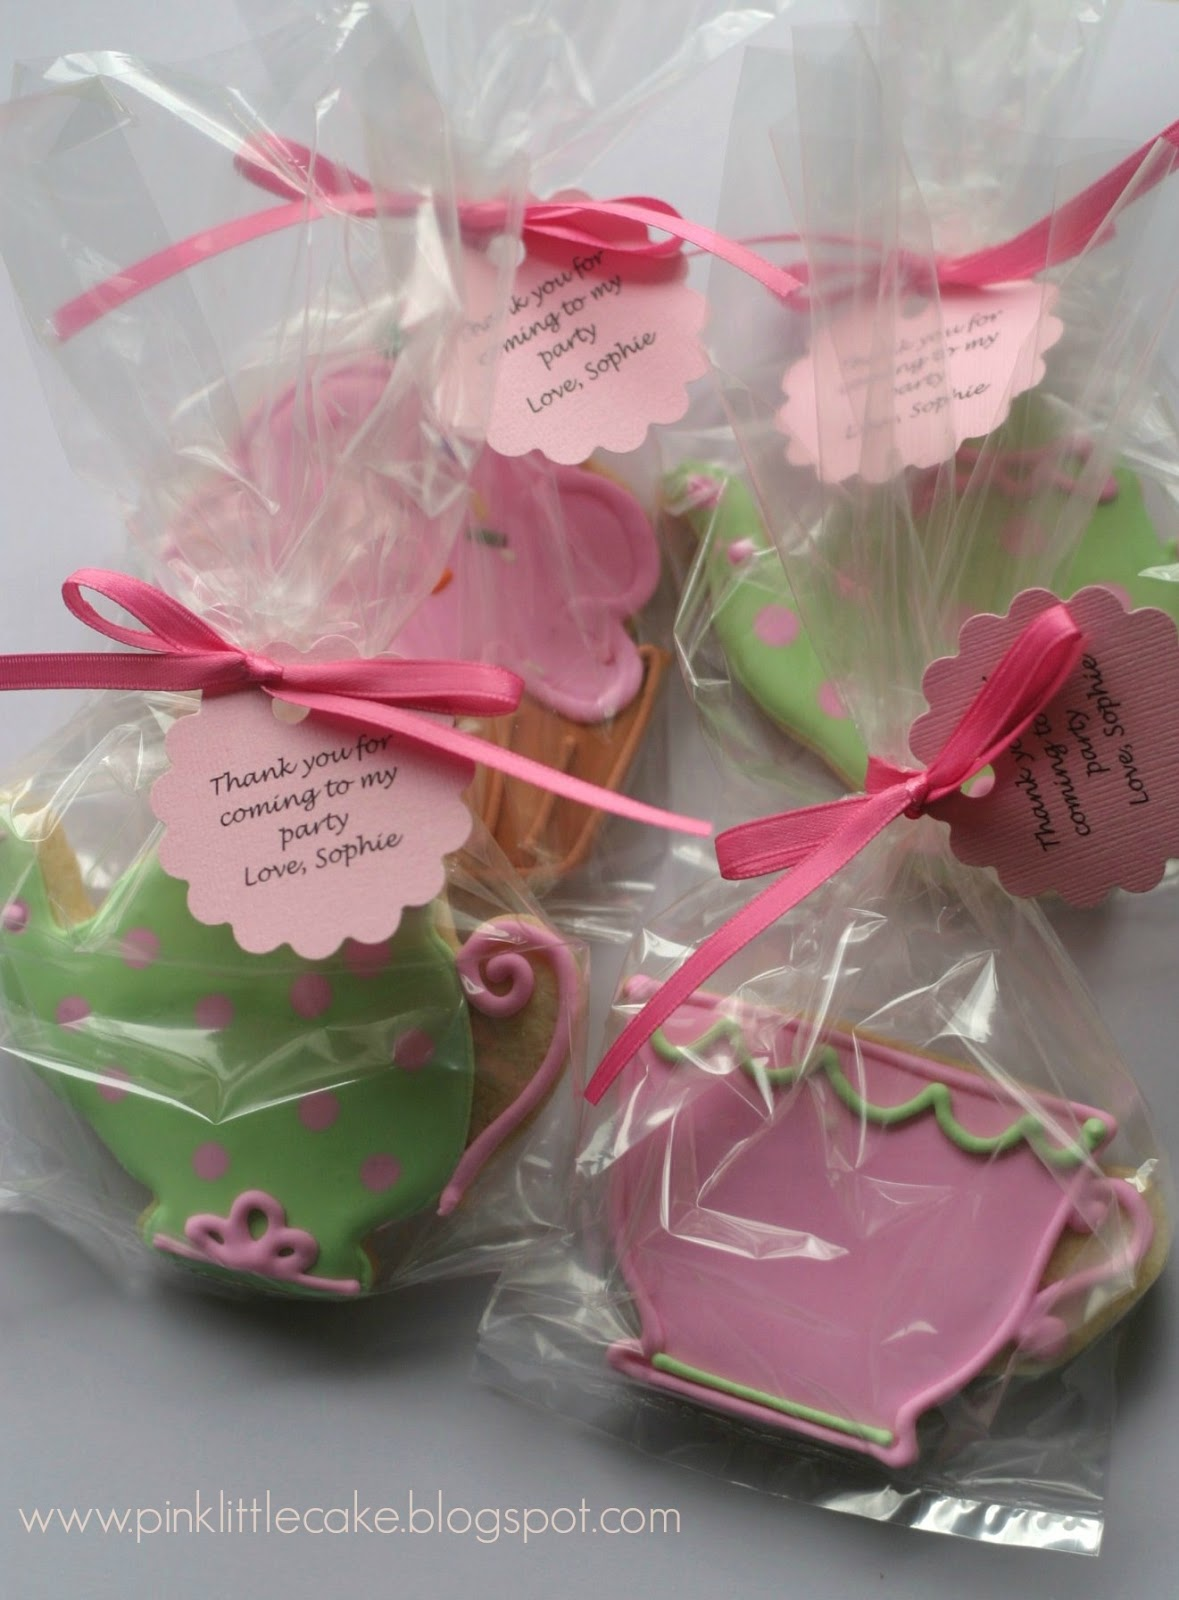 My Pink Little Cake: Tea Party Cake, Cupcakes and Cookie Favors